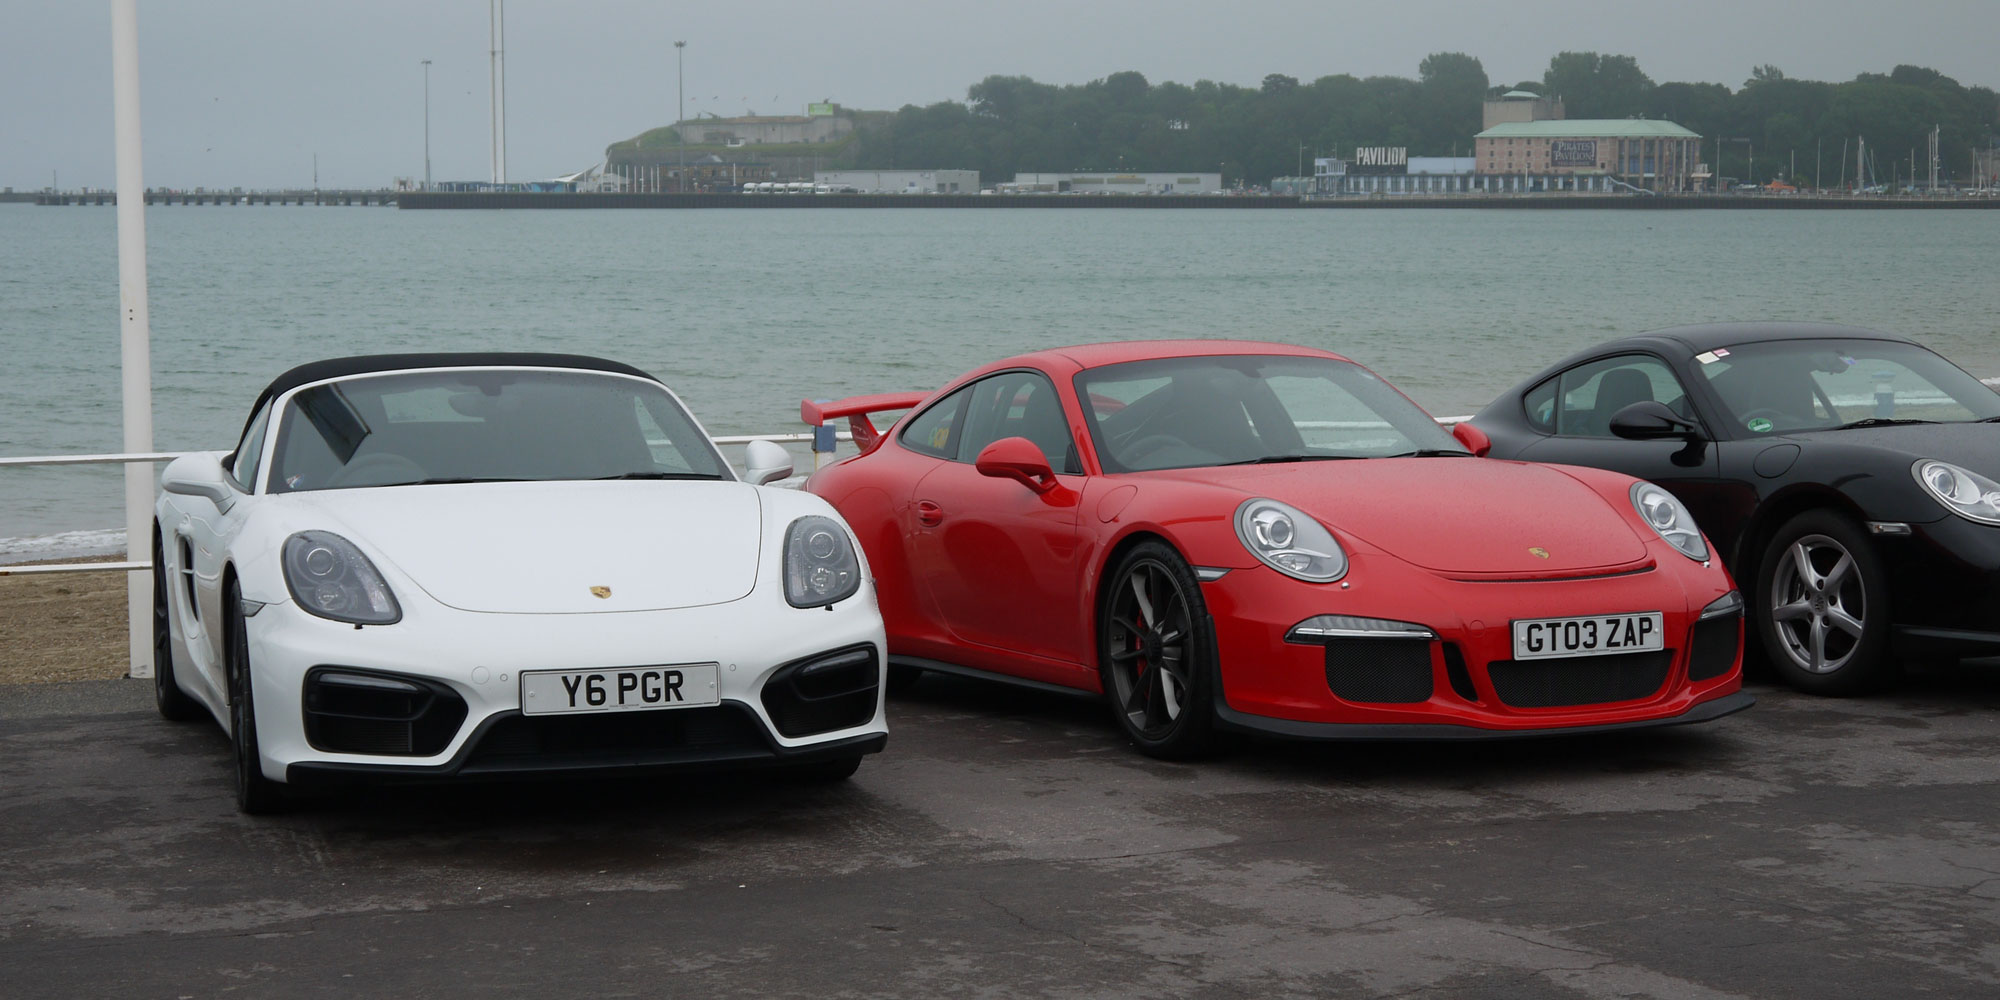 Porsche club at Weymouth